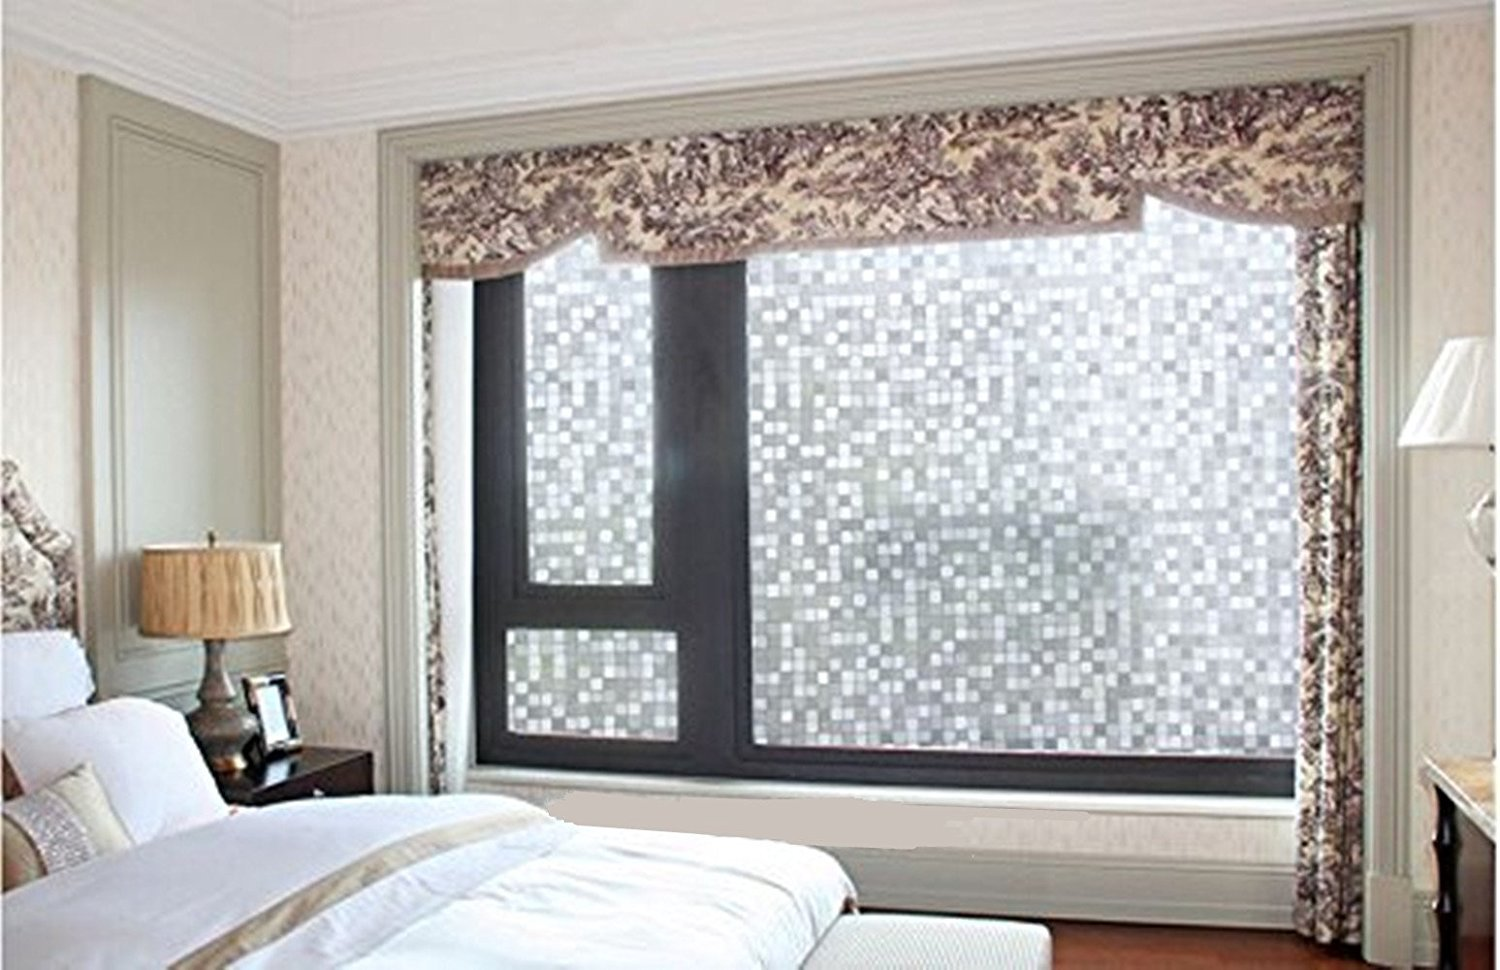 Coavas No Glue Window Cling Static Cling Decorative Frosted Privacy Window Glass Film Glass Heat Control Anti Uv for Bathroom Office Home Kitchen (17.7 by 78.7inch) Corner Love